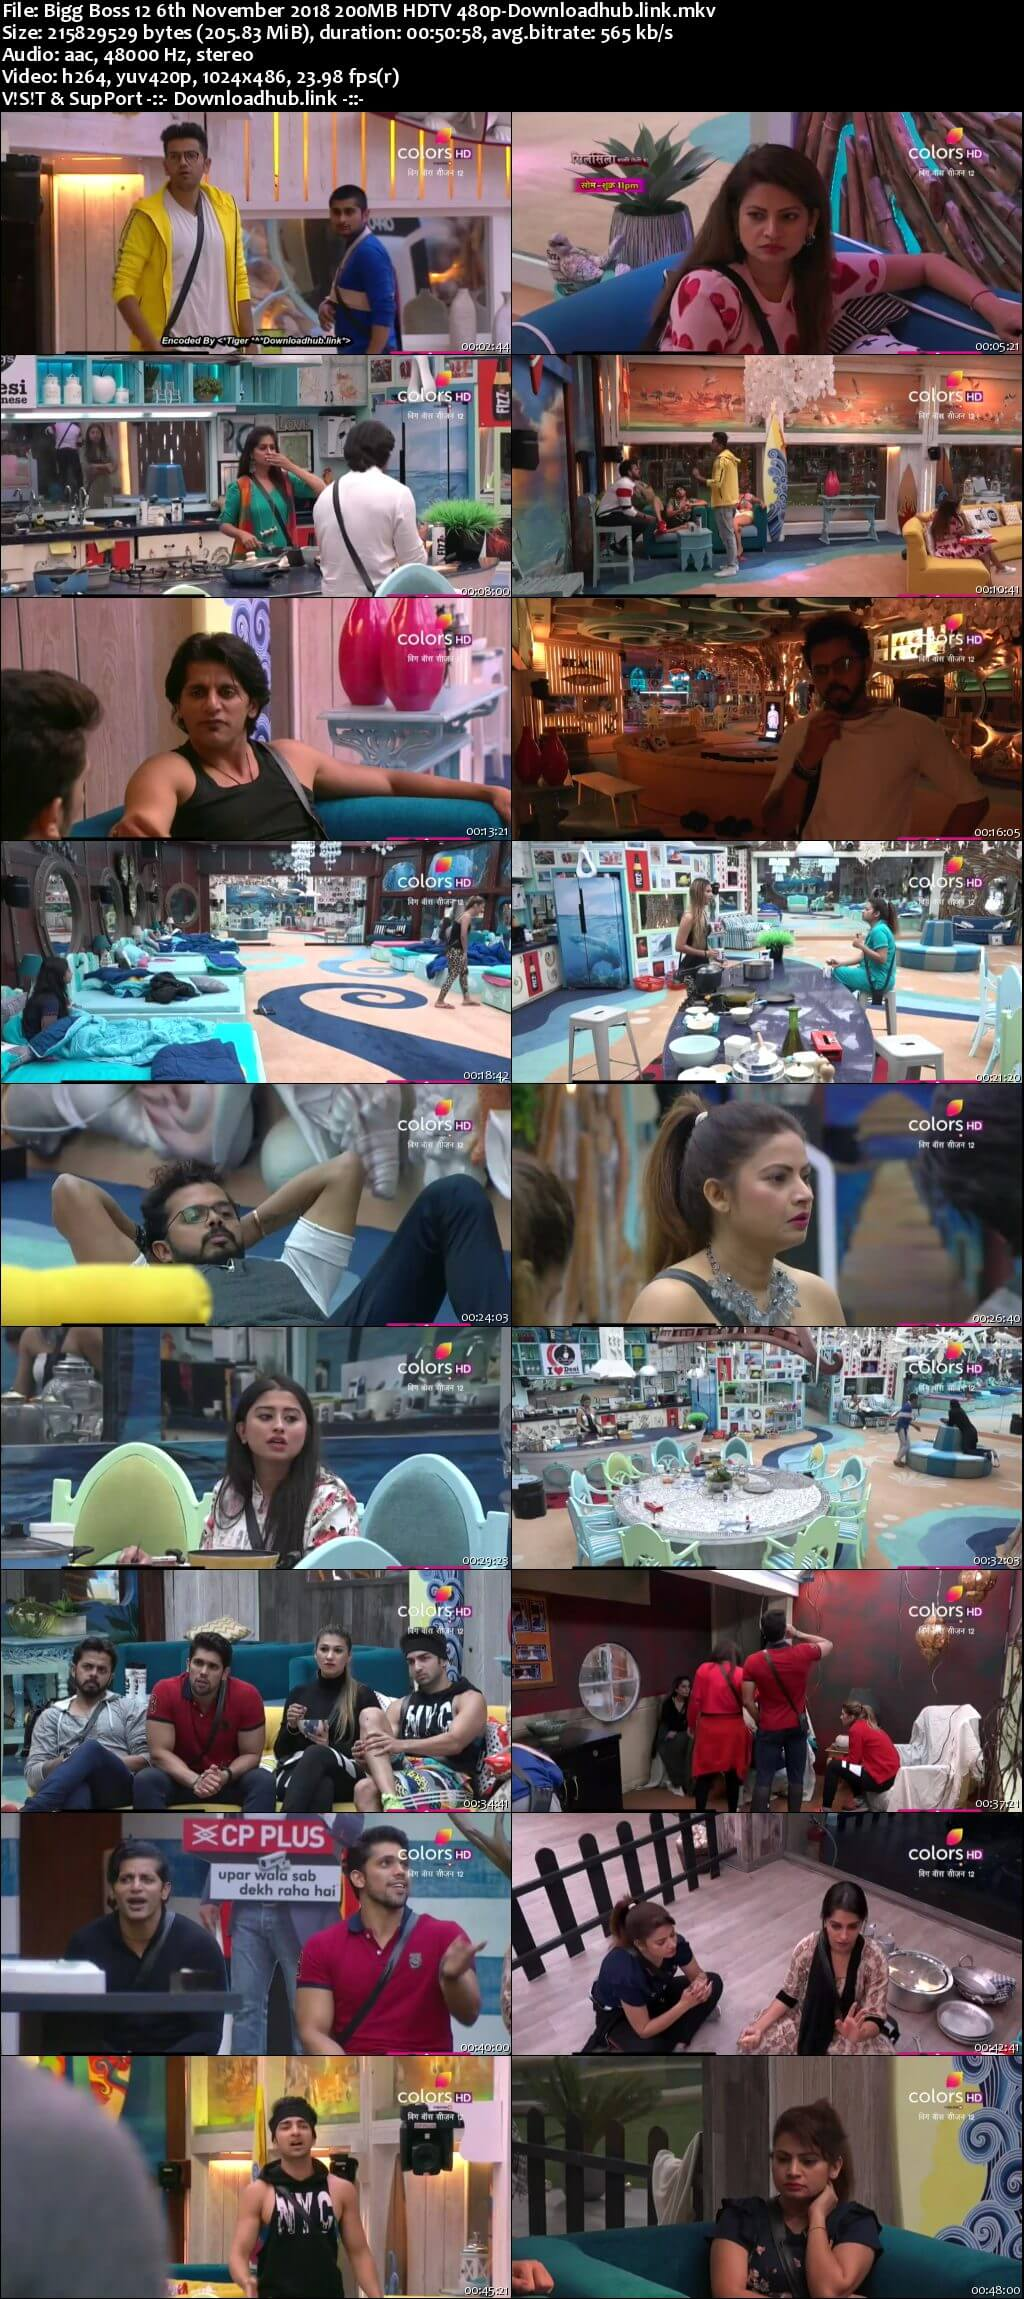 Bigg Boss 12 06 November 2018 Episode 51 HDTV 480p